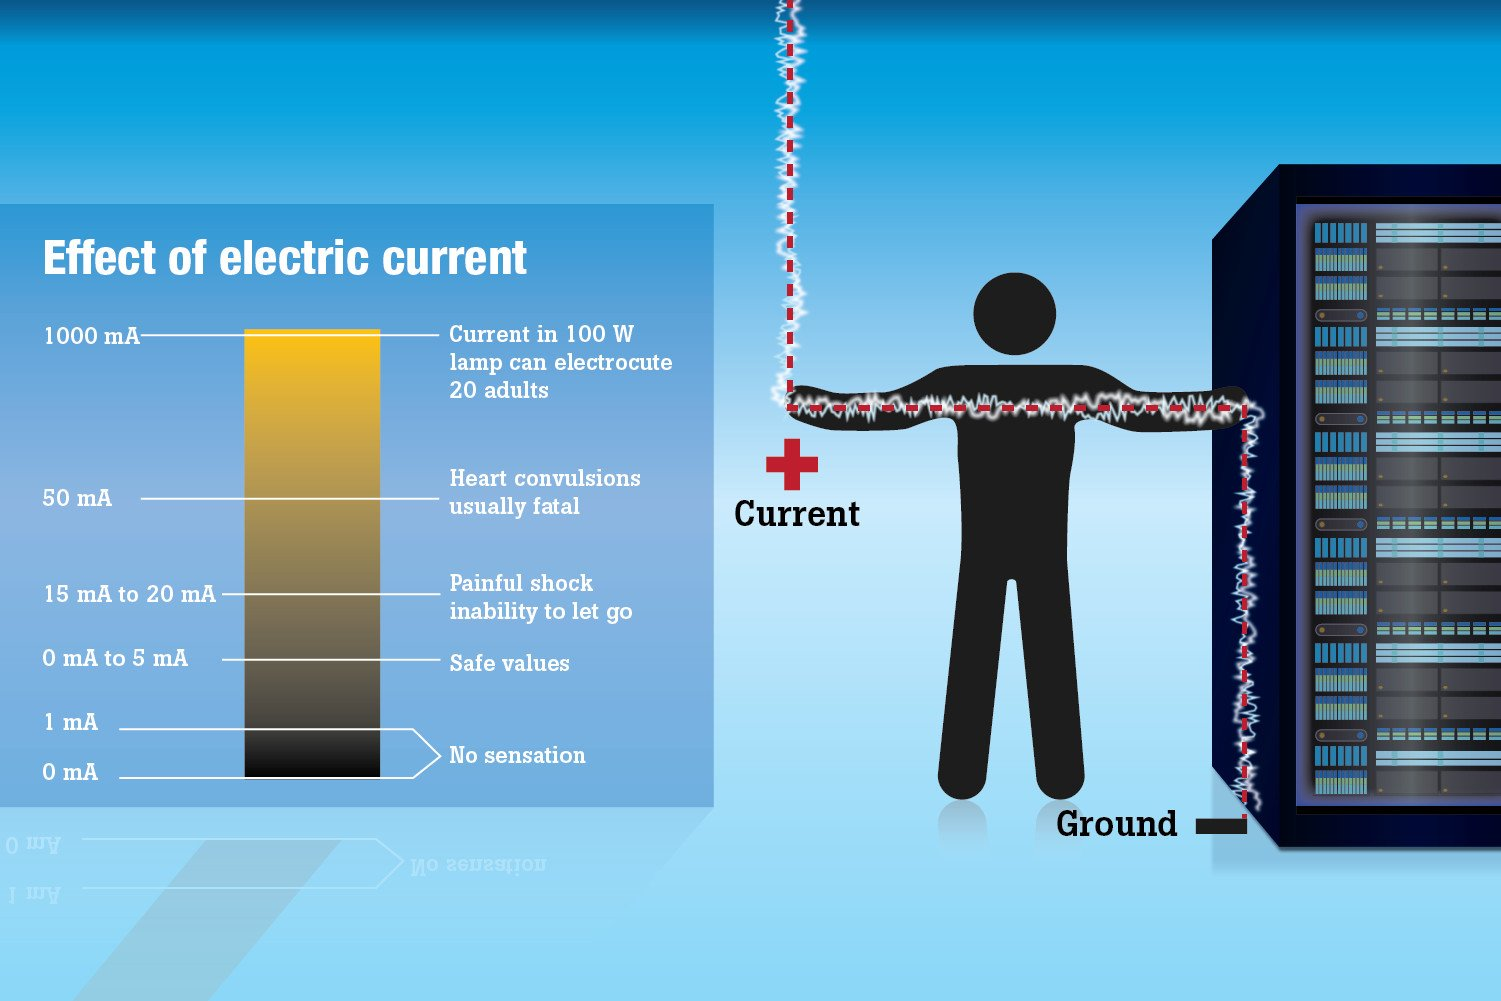 Effect of electrical current